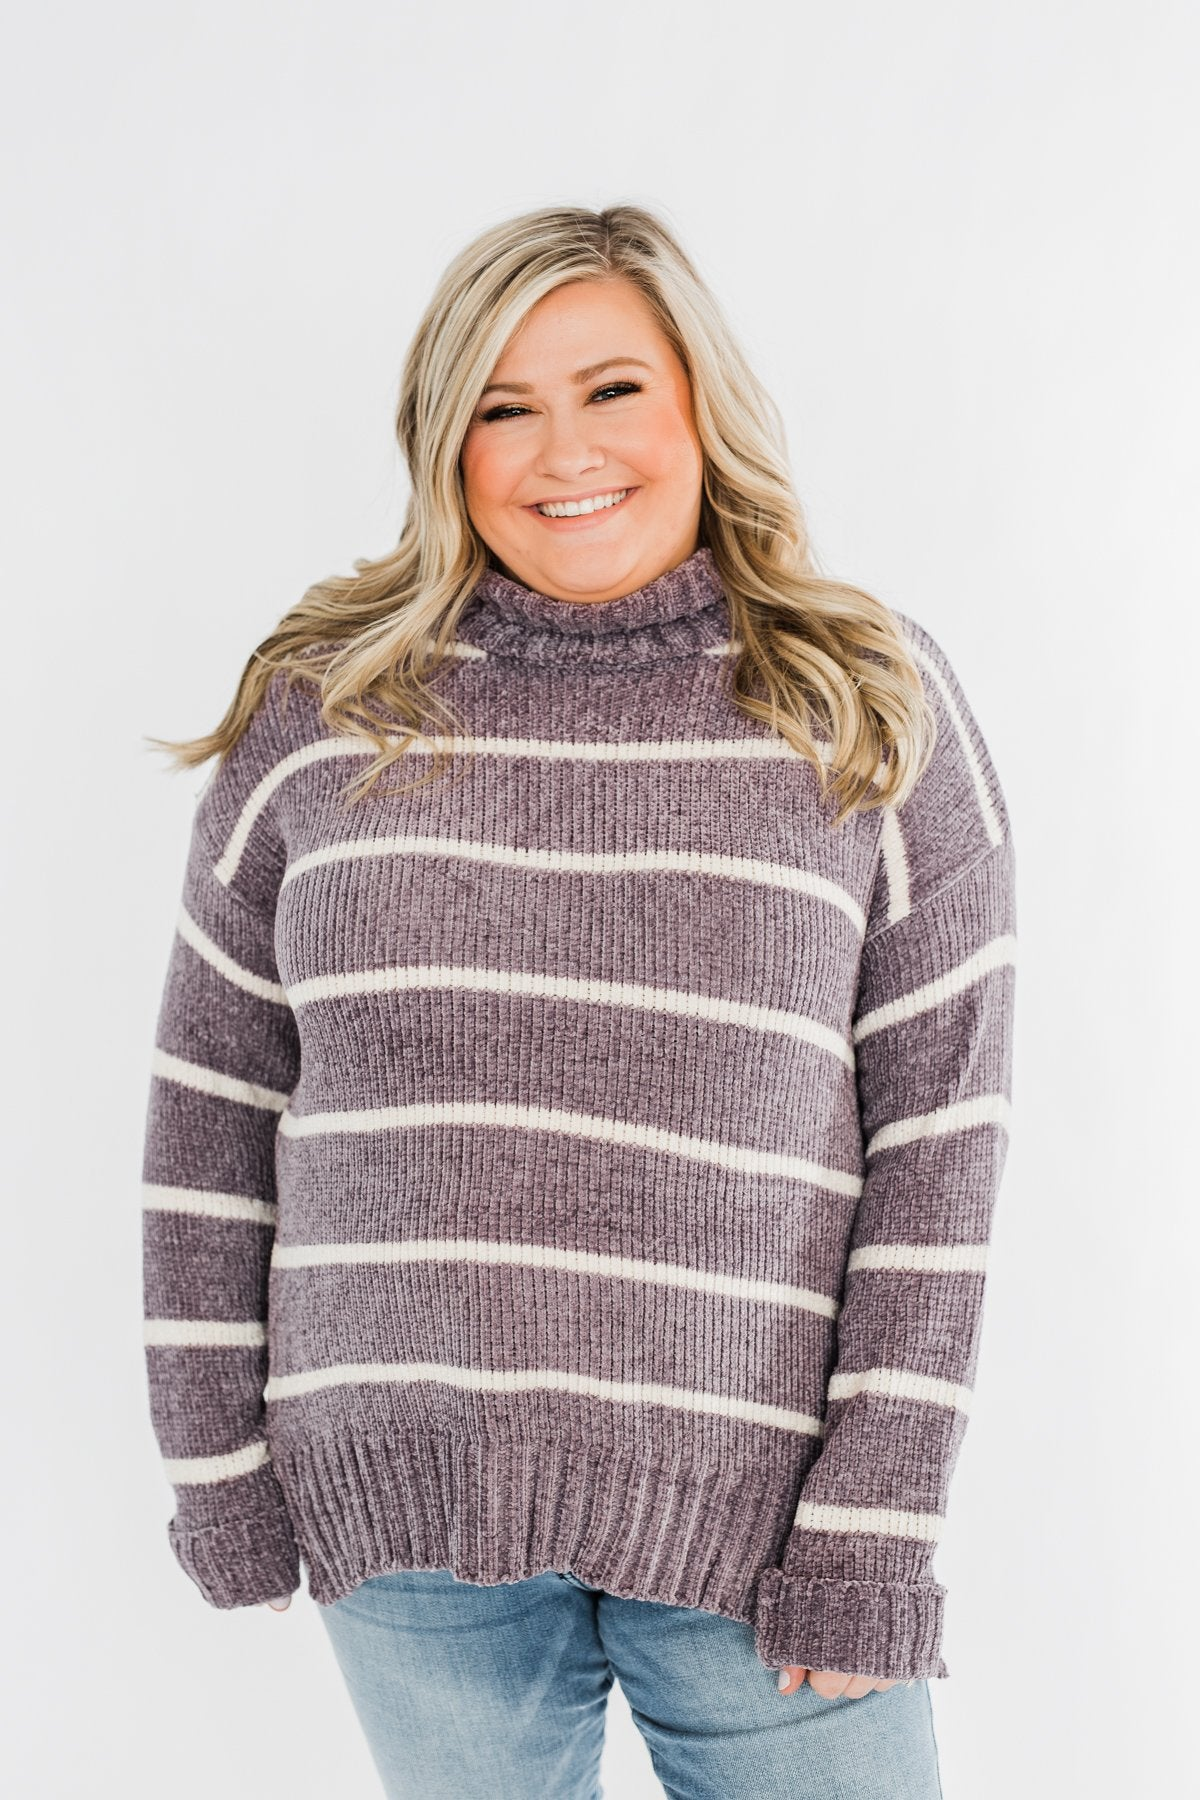 Truly Faithful Striped Sweater- Dusty Lavender